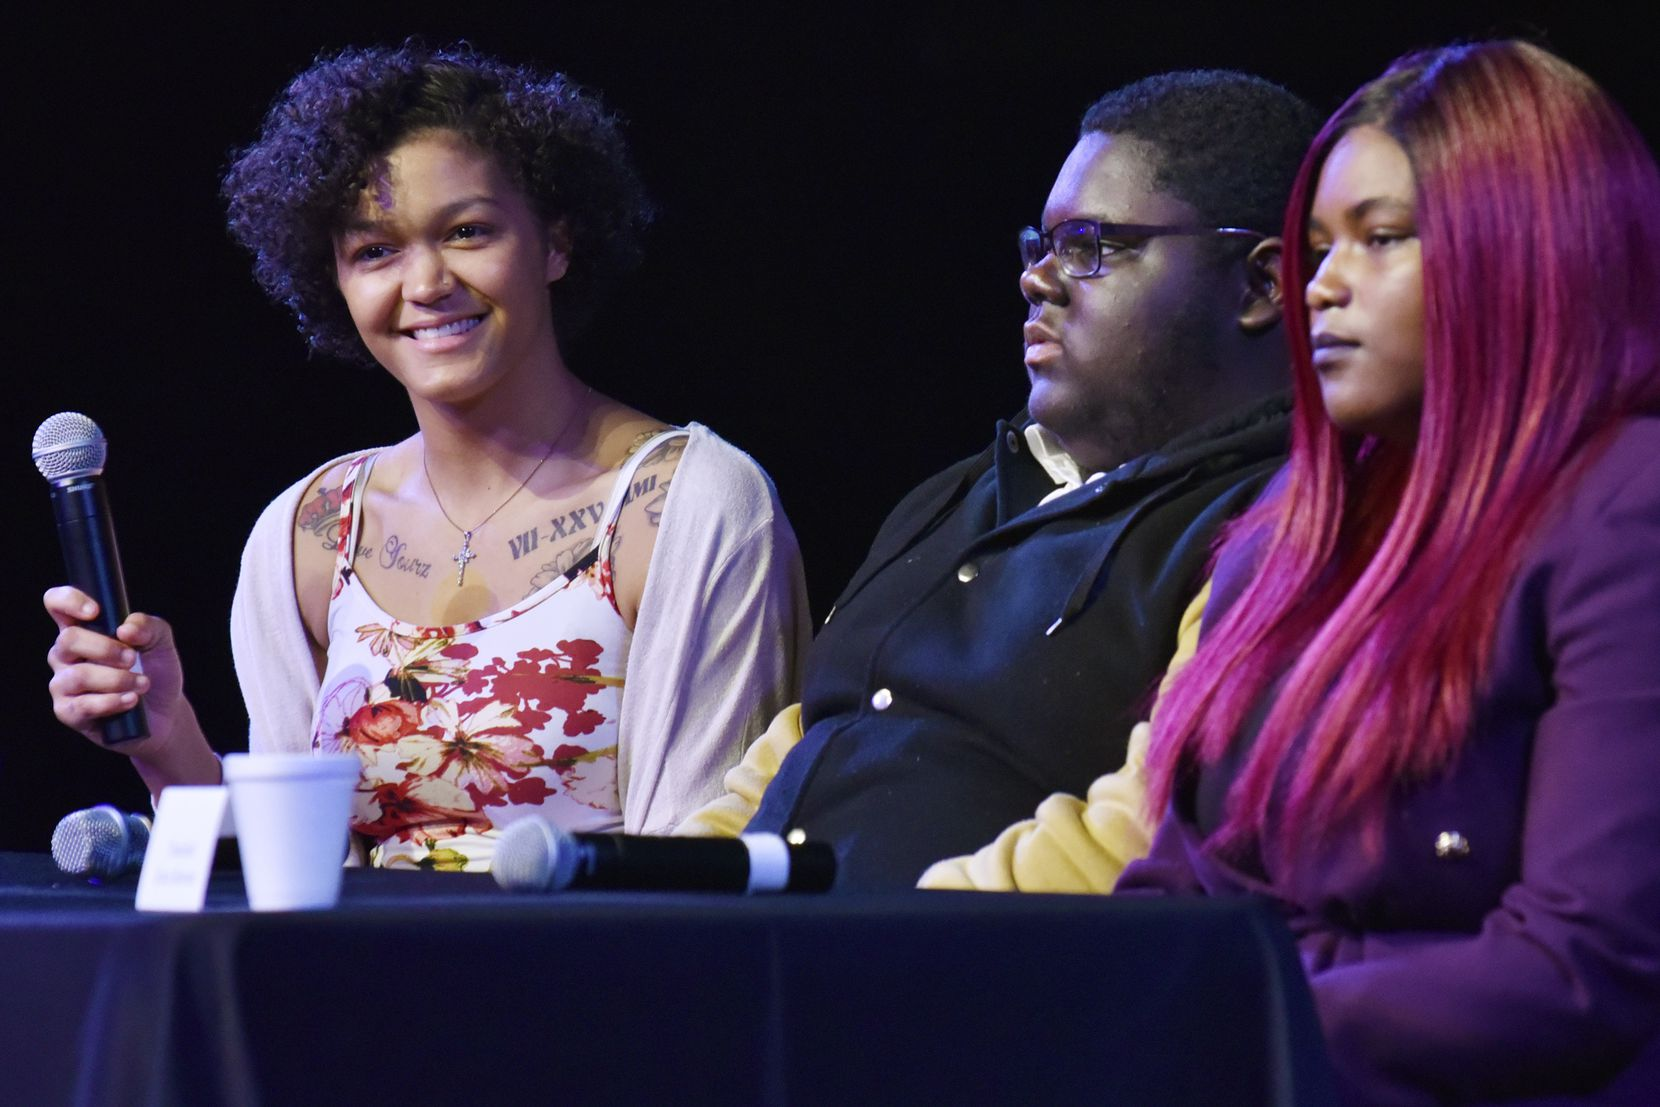 Justice Pearson (left), 18, smiles with tears in her eyes while speaking alongside Joshua Lewis, 14, and Kyra Burton, 19, about important people in their lives who have helped them while experiencing homelessness, at the Youth Homeless Address: Call to Action, hosted by the Metro Dallas Homeless Alliance Youth Committee, at Lovers Lane United Methodist Church in Dallas, Nov. 19, 2019.